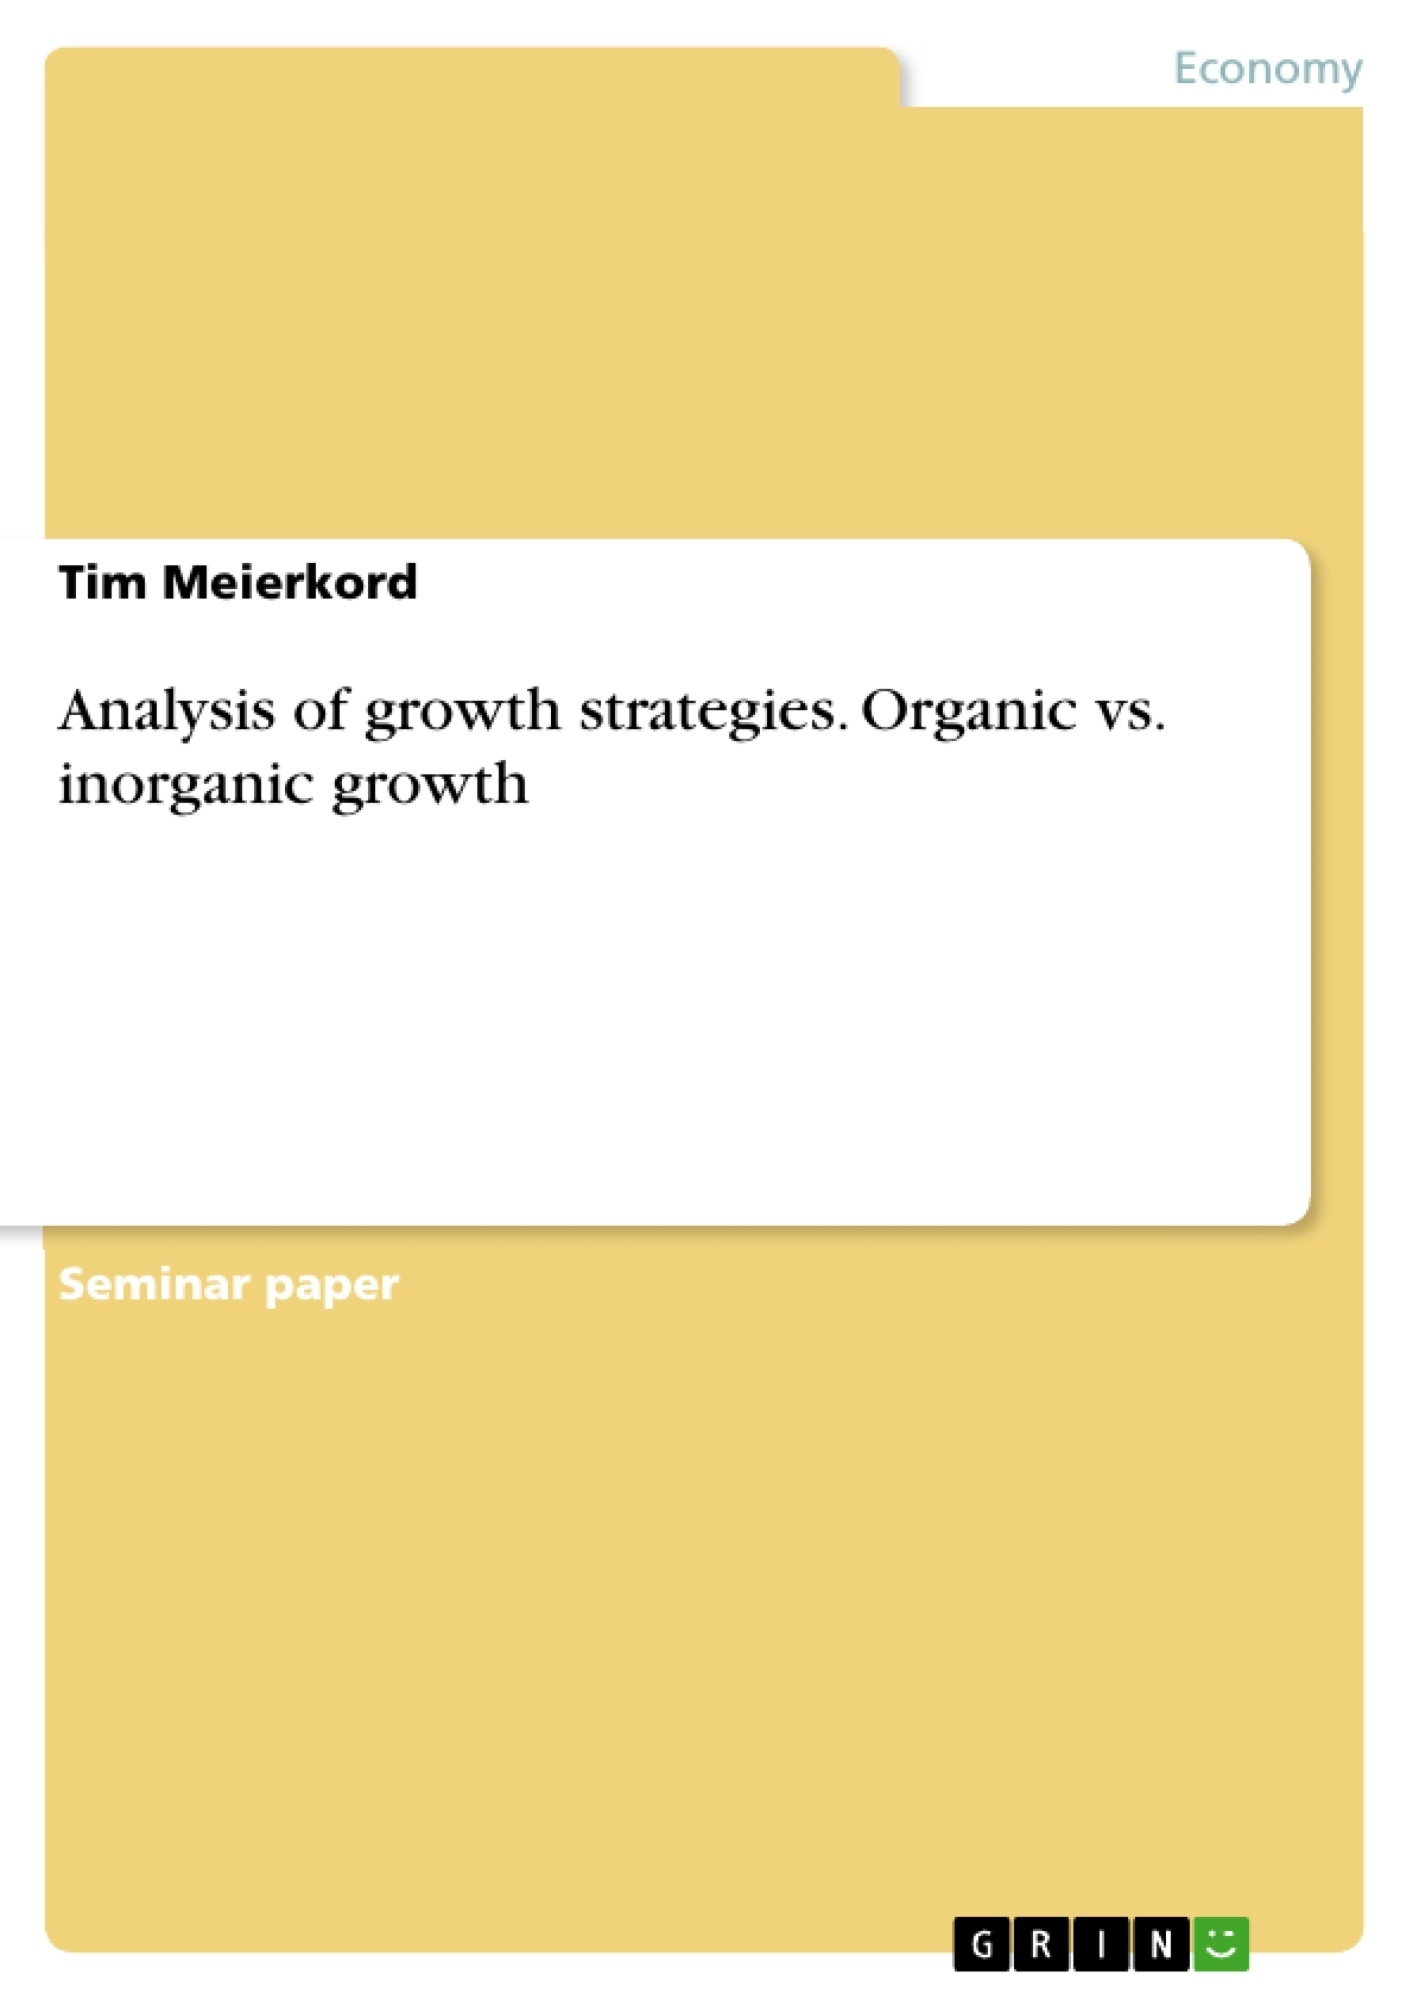 Title: Analysis of growth strategies. Organic vs. inorganic growth